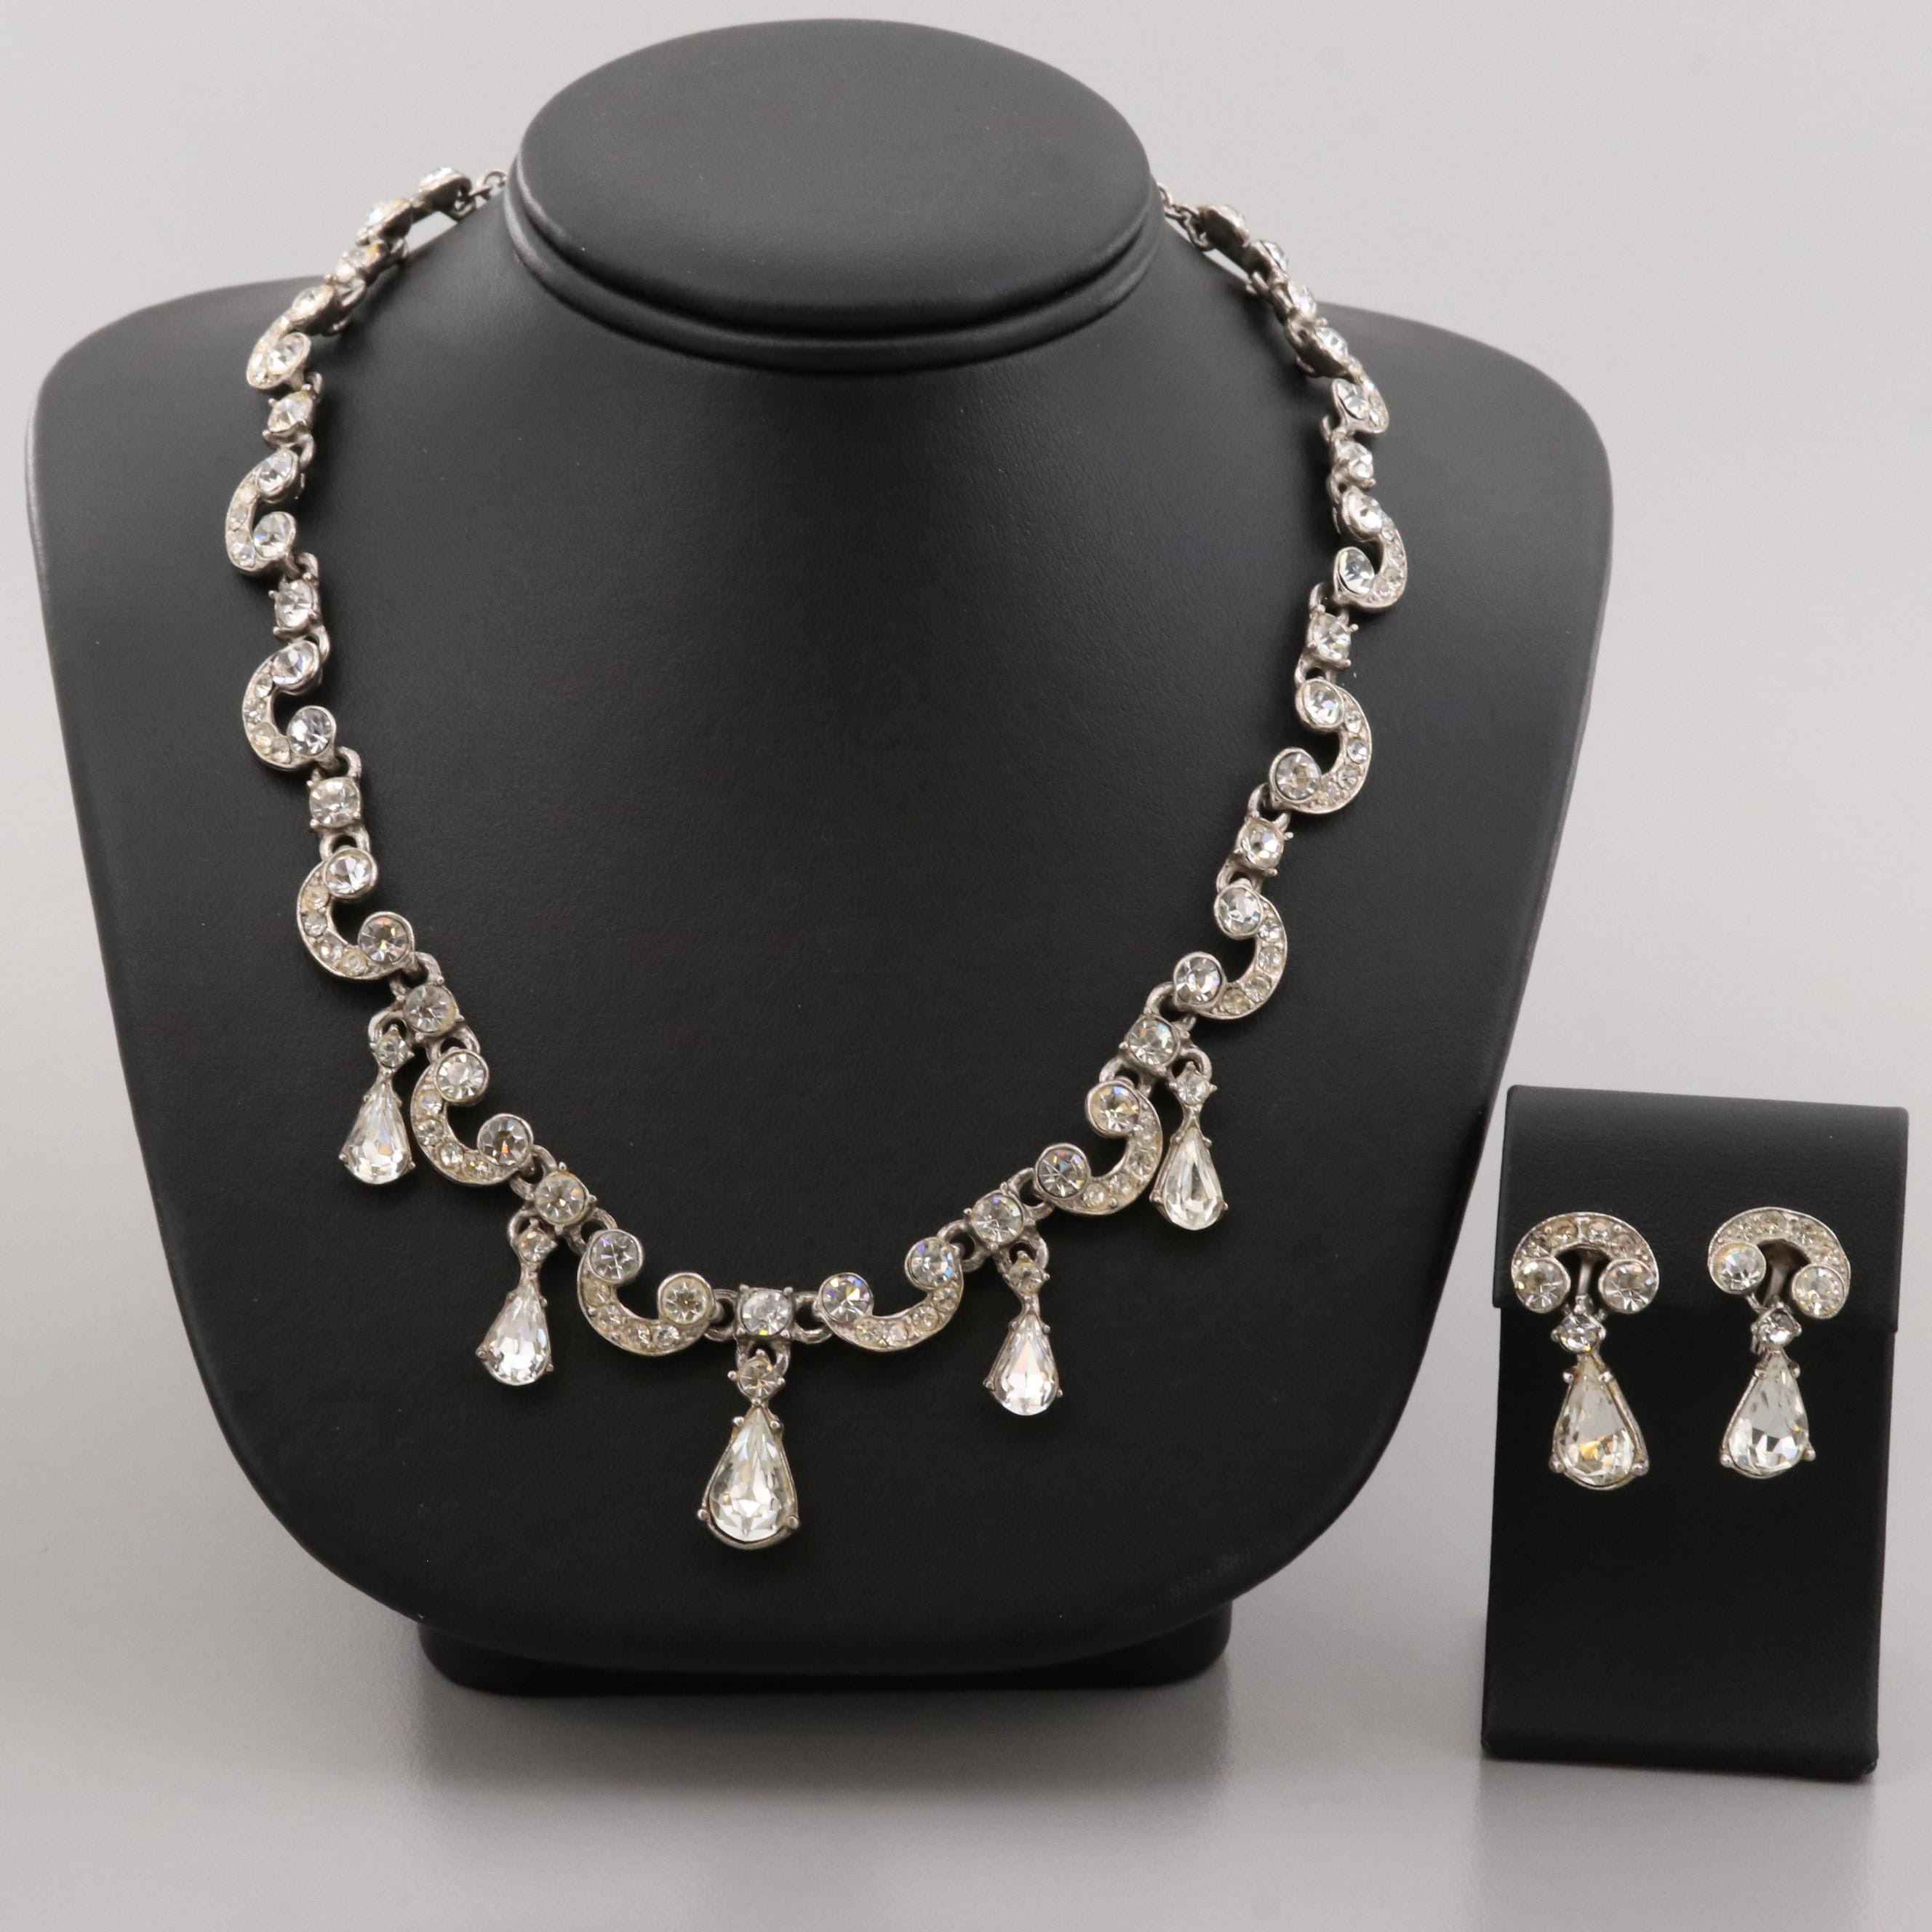 Silver Tone Foilback Glass Necklace and Earring Set